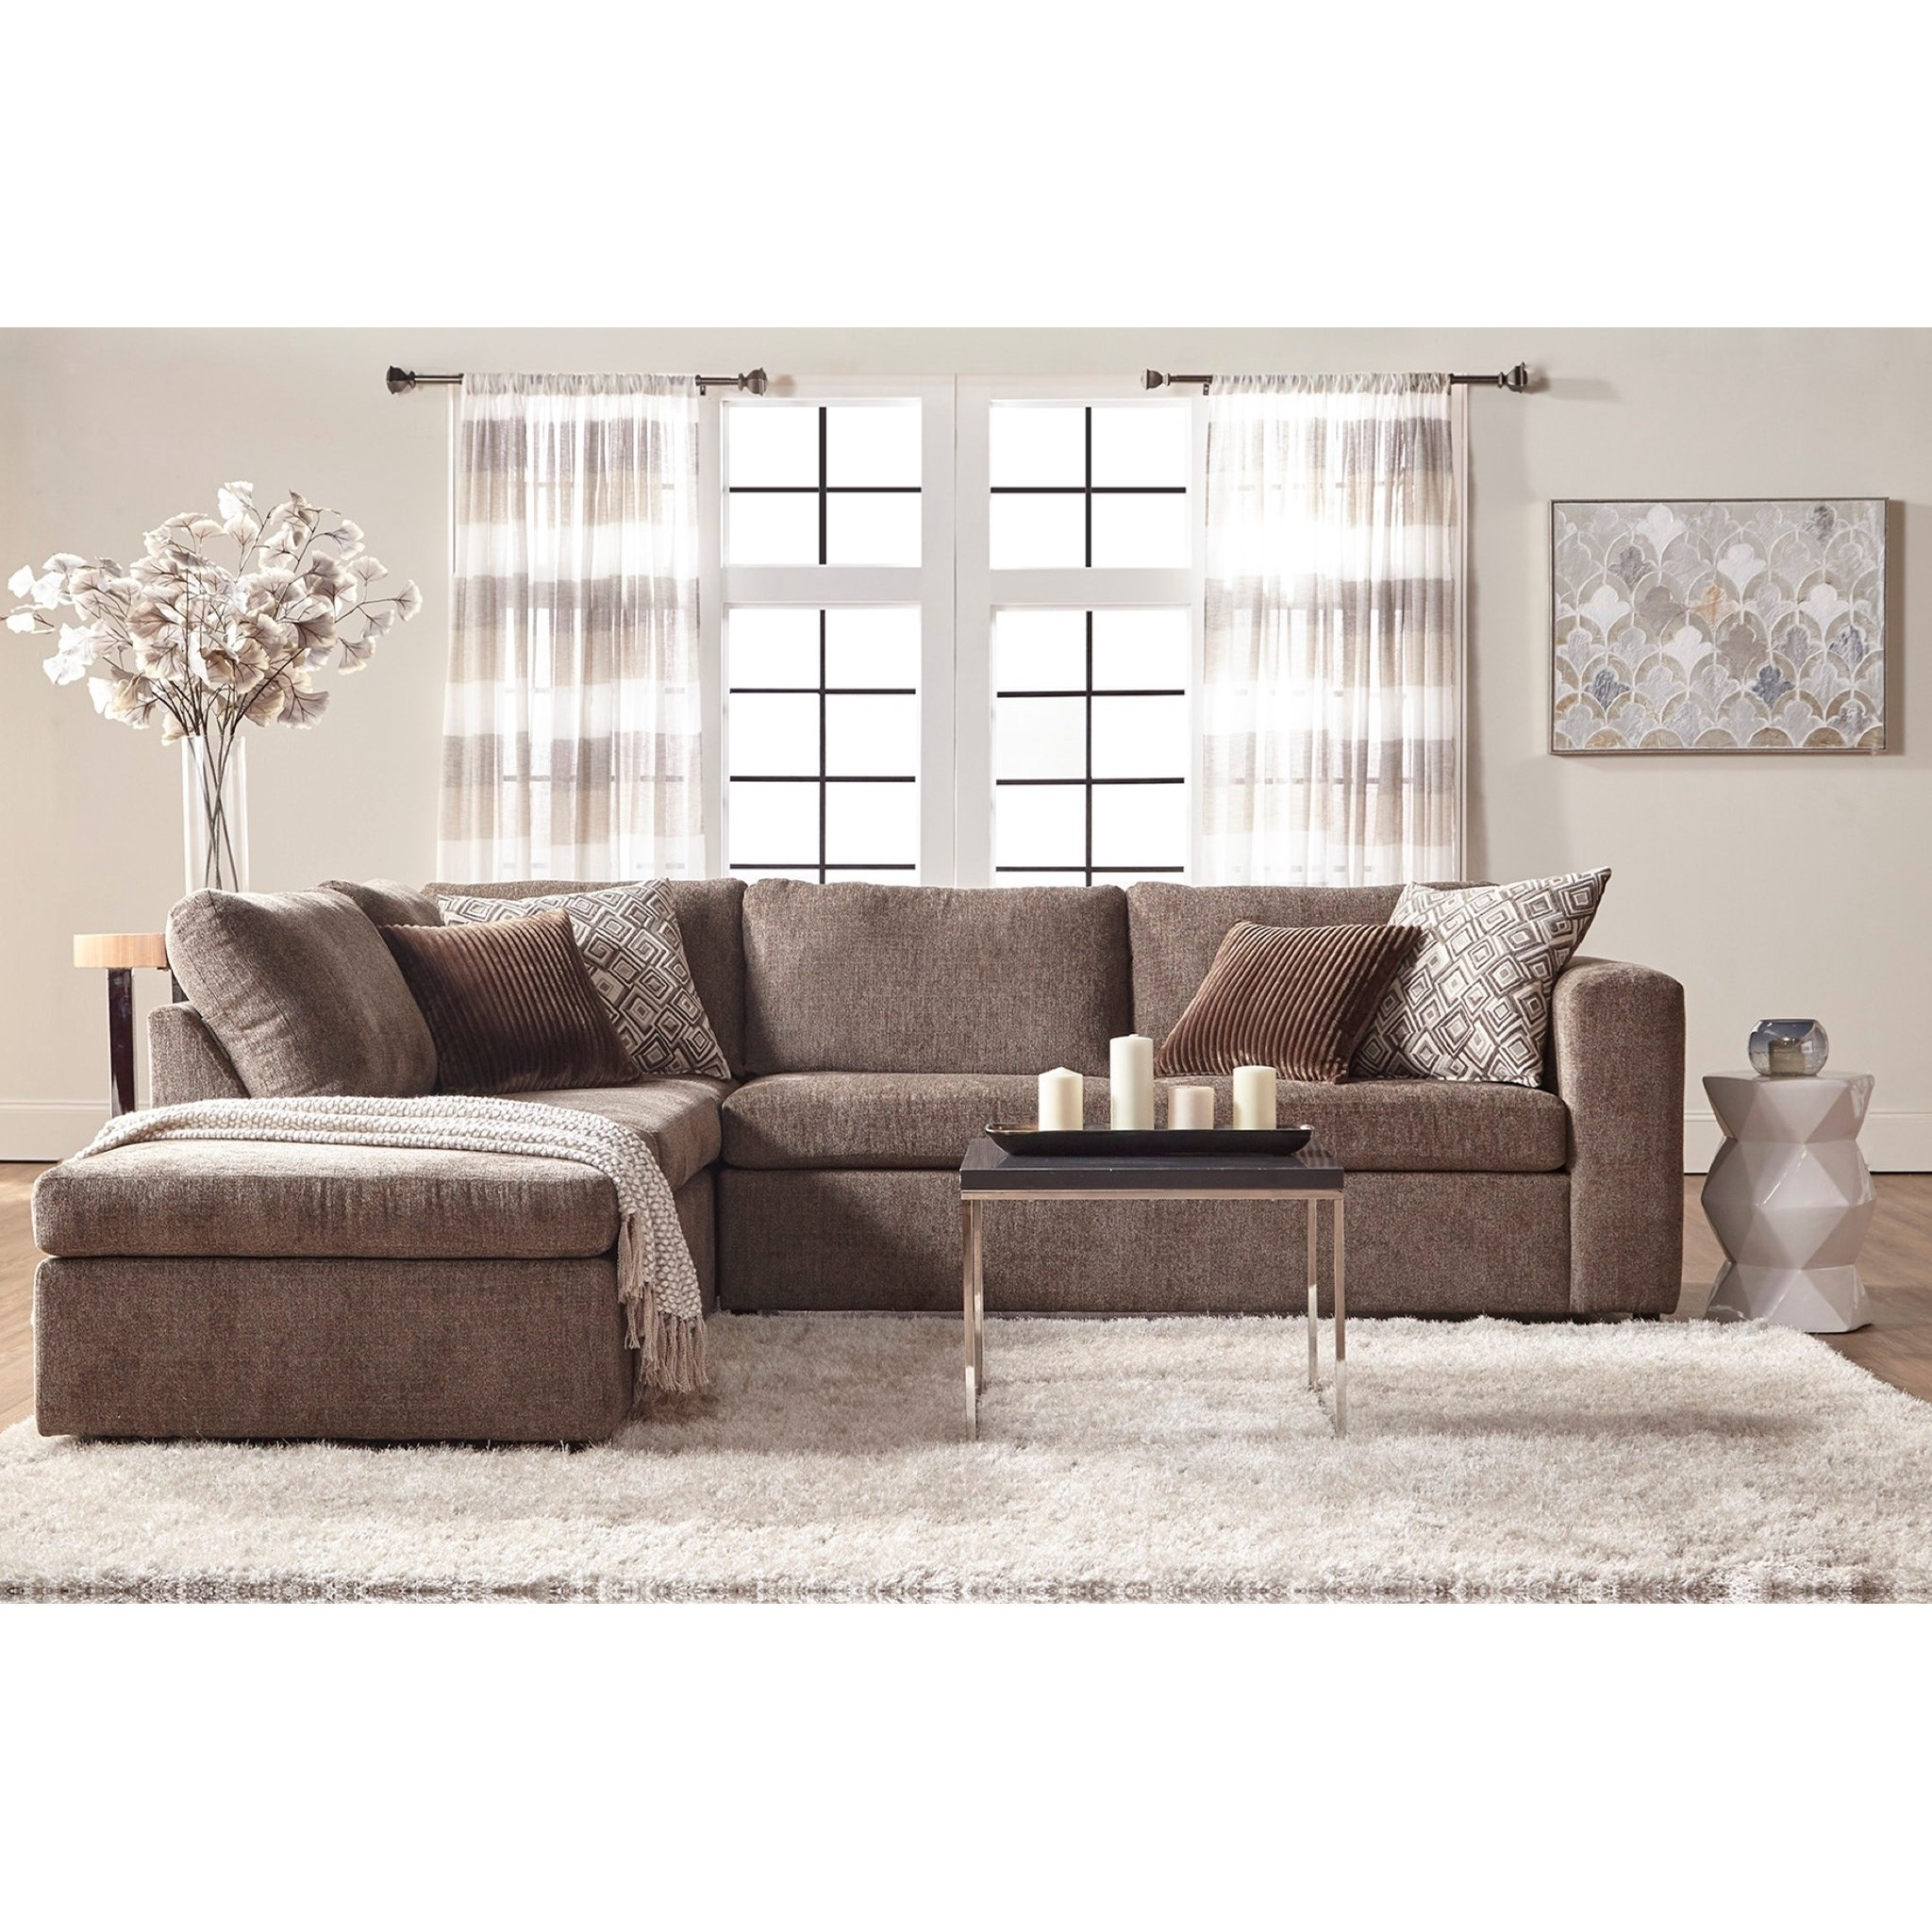 Serta Upholstery Sectional Sofa   Http://ml2R   Pinterest Throughout Vaughan Sectional Sofas (View 3 of 10)